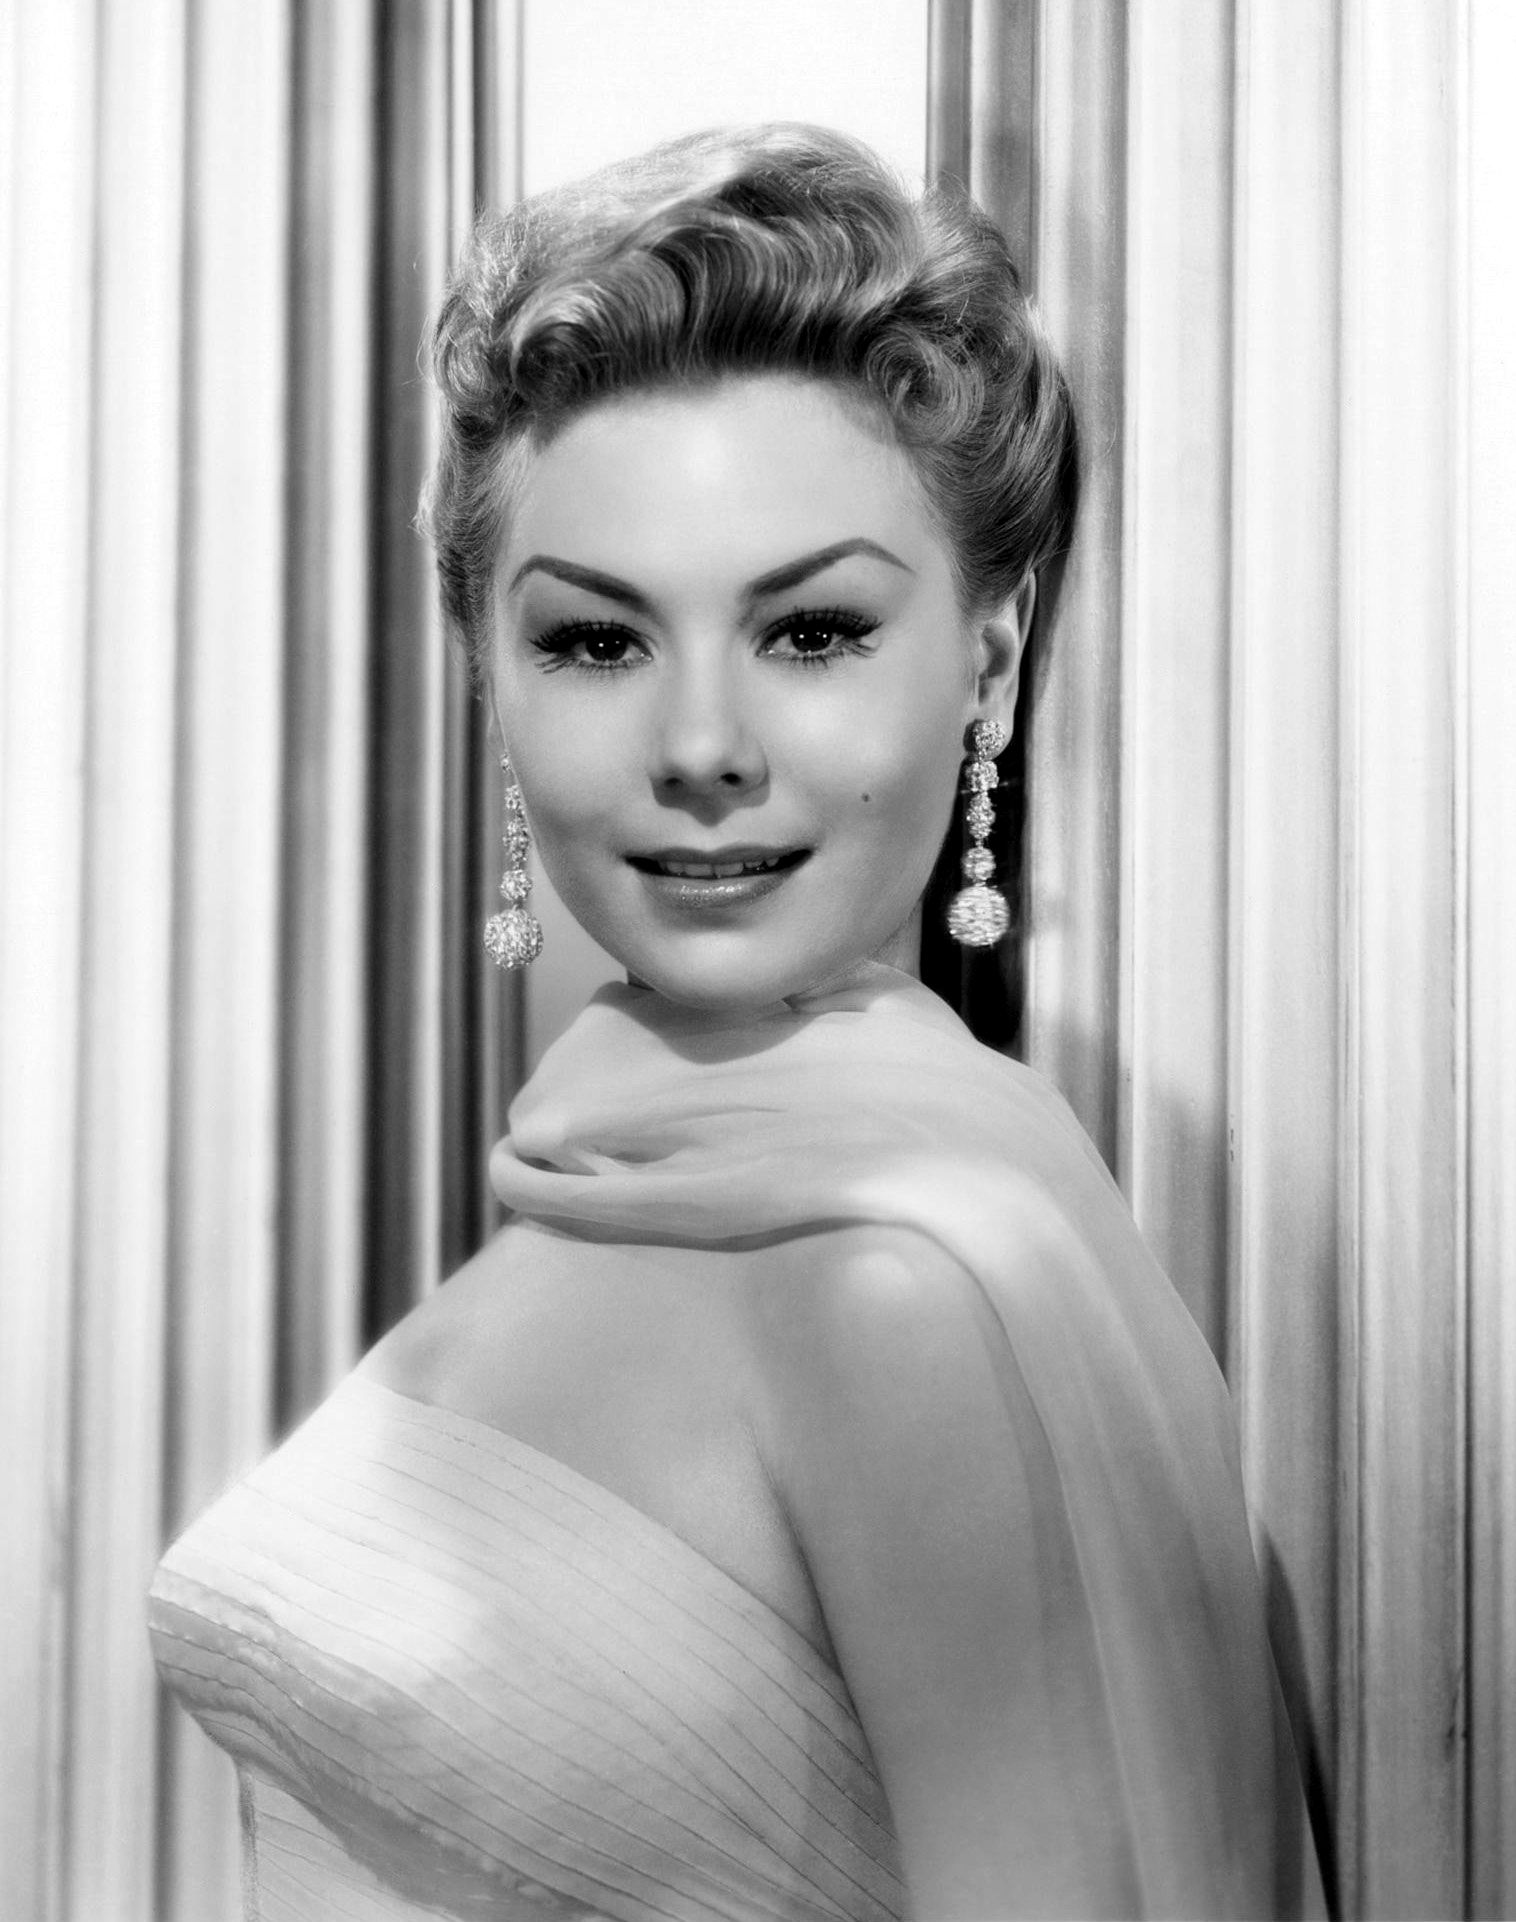 Mitzi Gaynor nudes (32 foto and video), Tits, Hot, Twitter, braless 2019